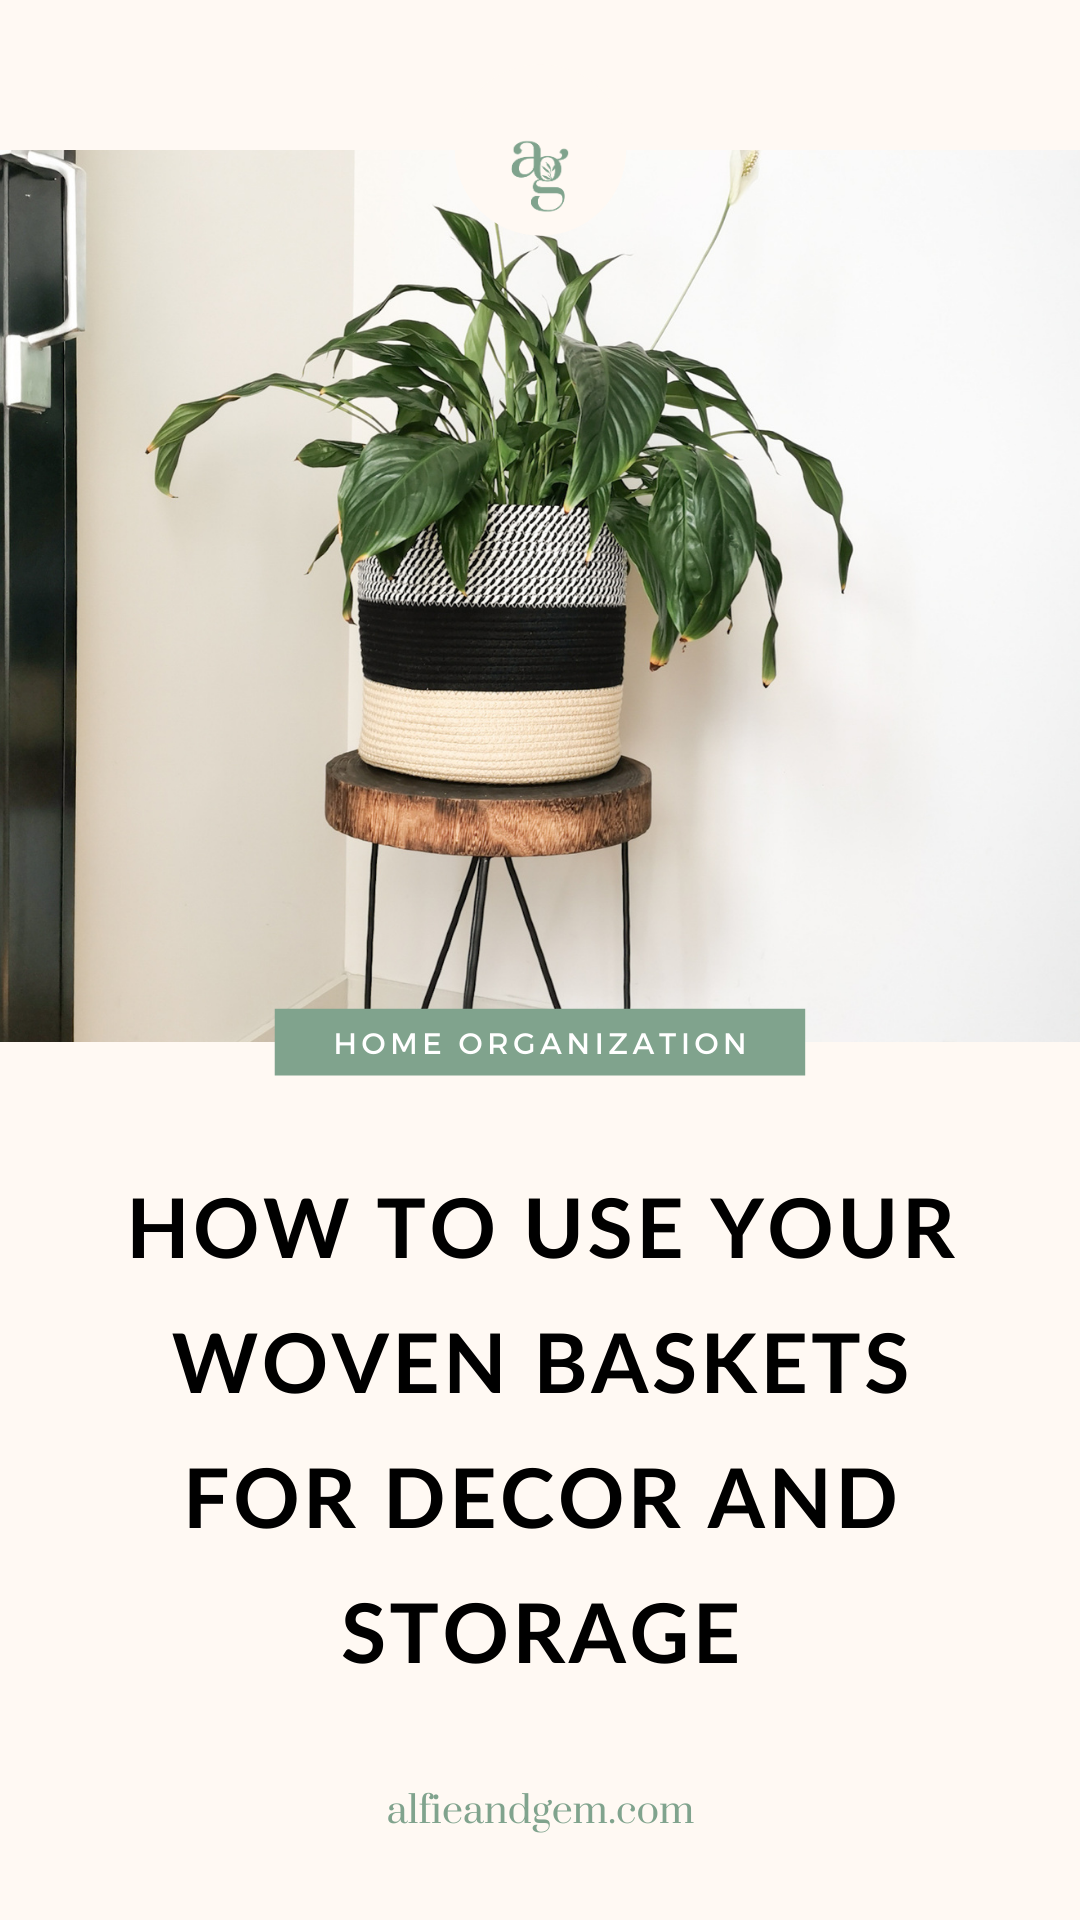 How to use your woven baskets for decor and storage